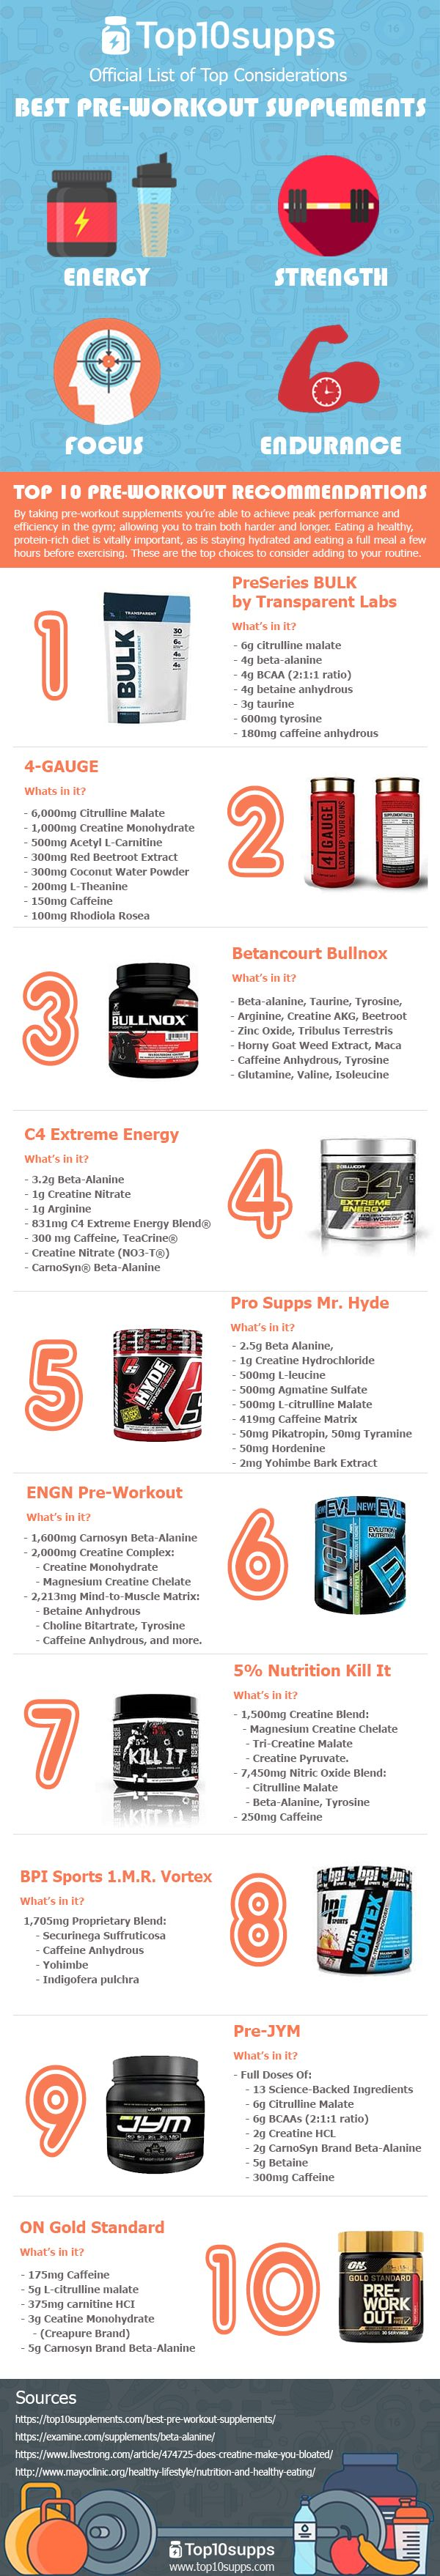 This is our official list of the best pre-workout supplements to consider this year. Visit the URL forour Pre-workout Supplements Guide to learn more.